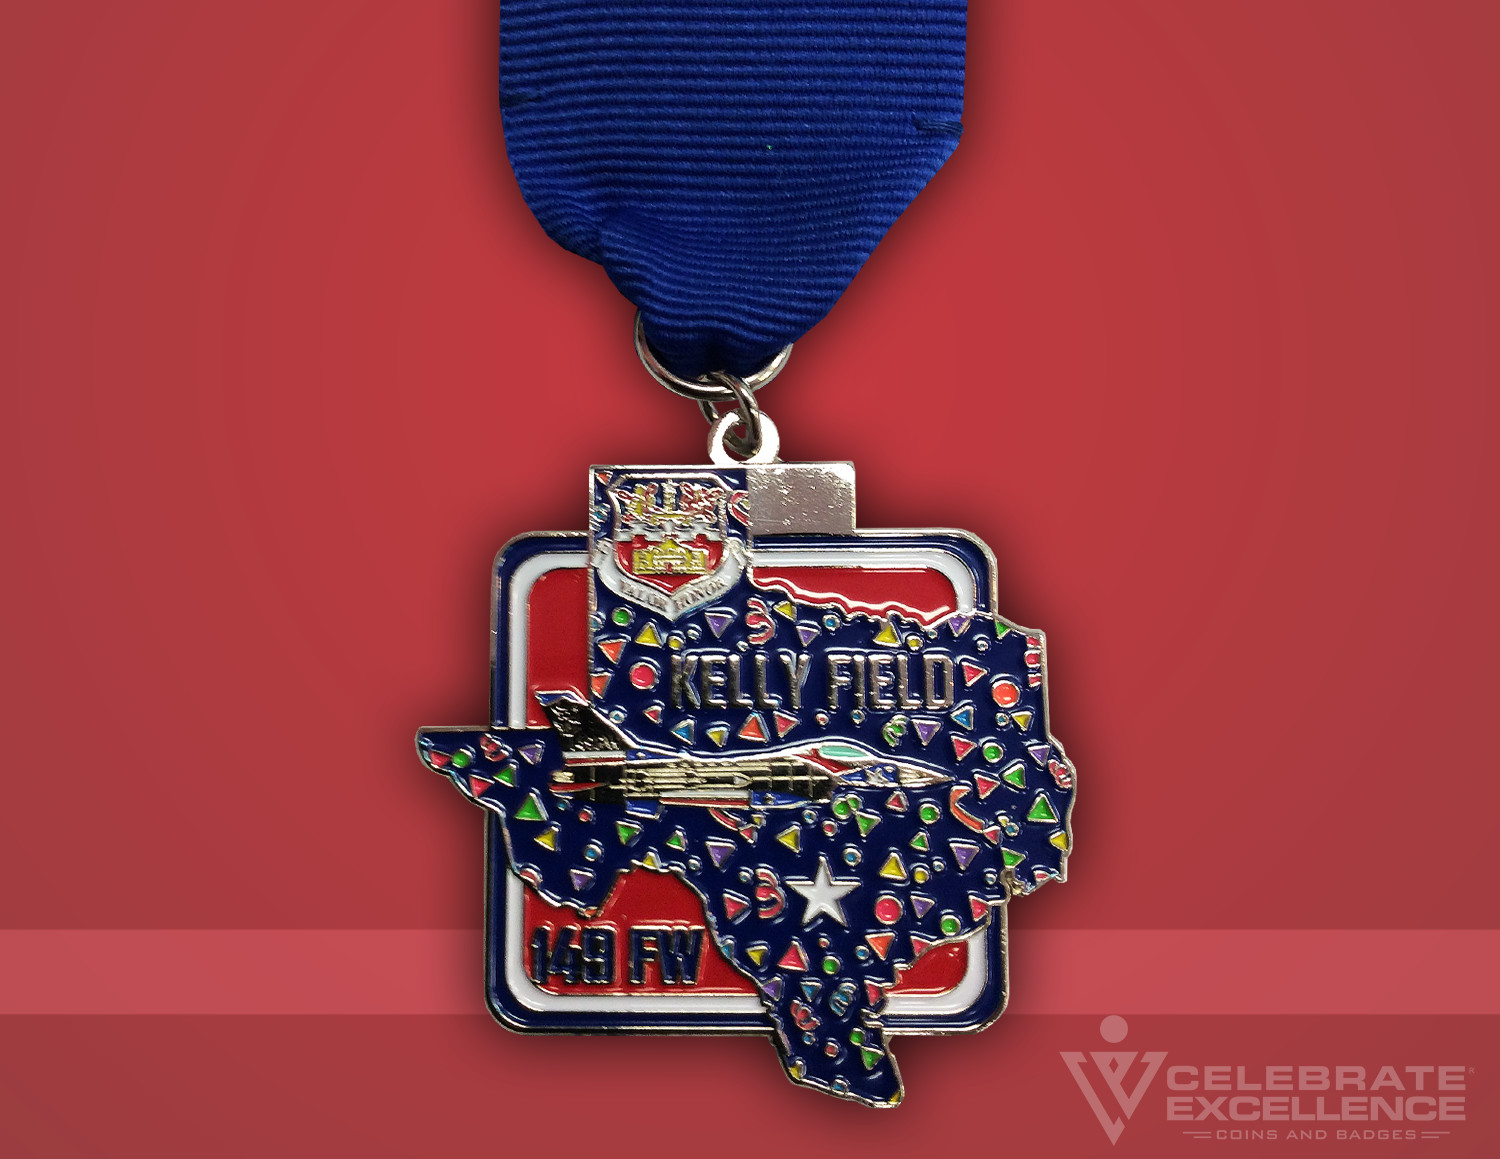 Celebrate Excellence 149 FW Fiesta Medal